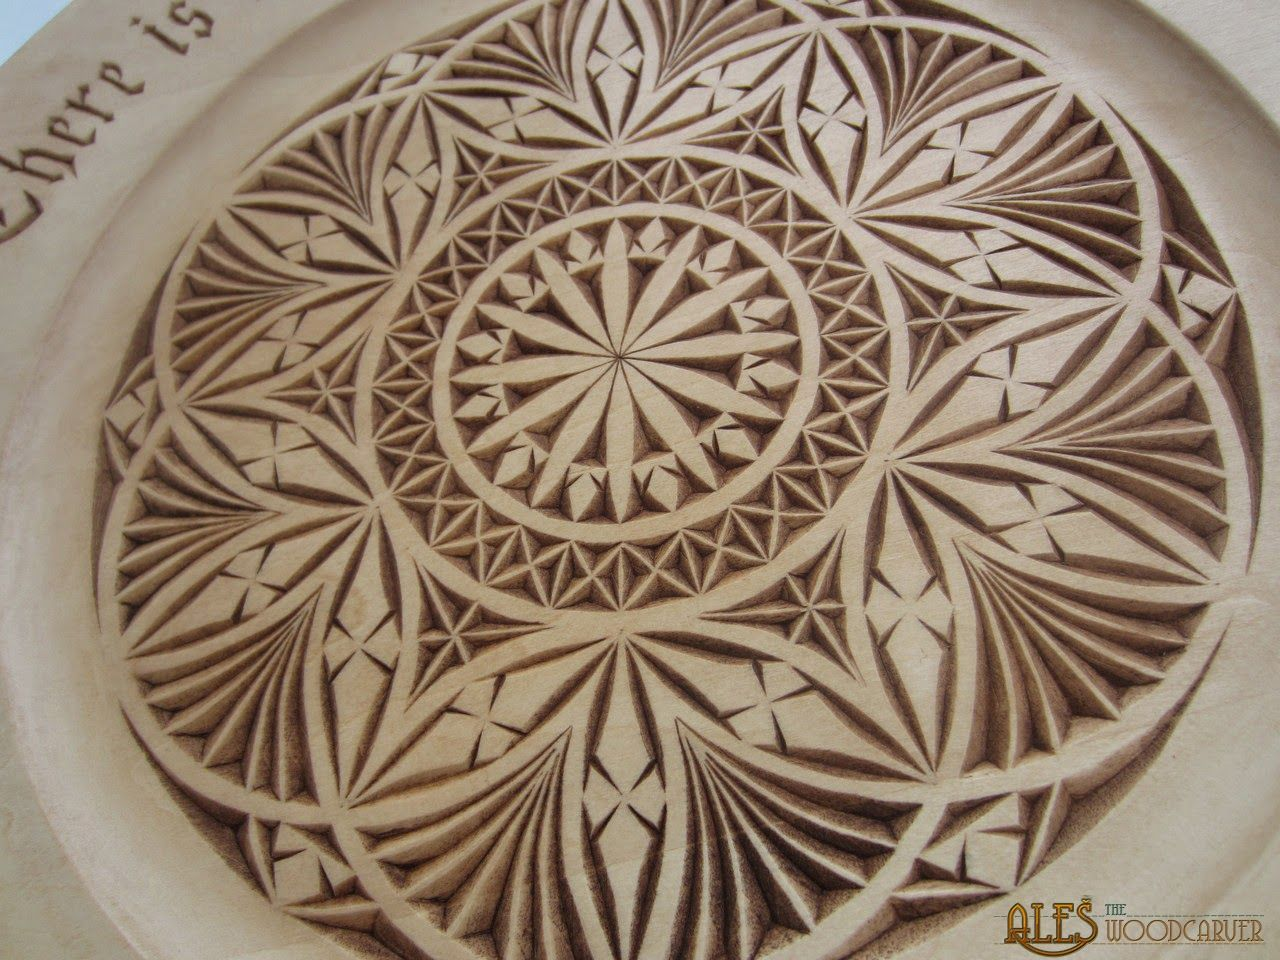 Detail of basswood plate chip carving by ales janosik